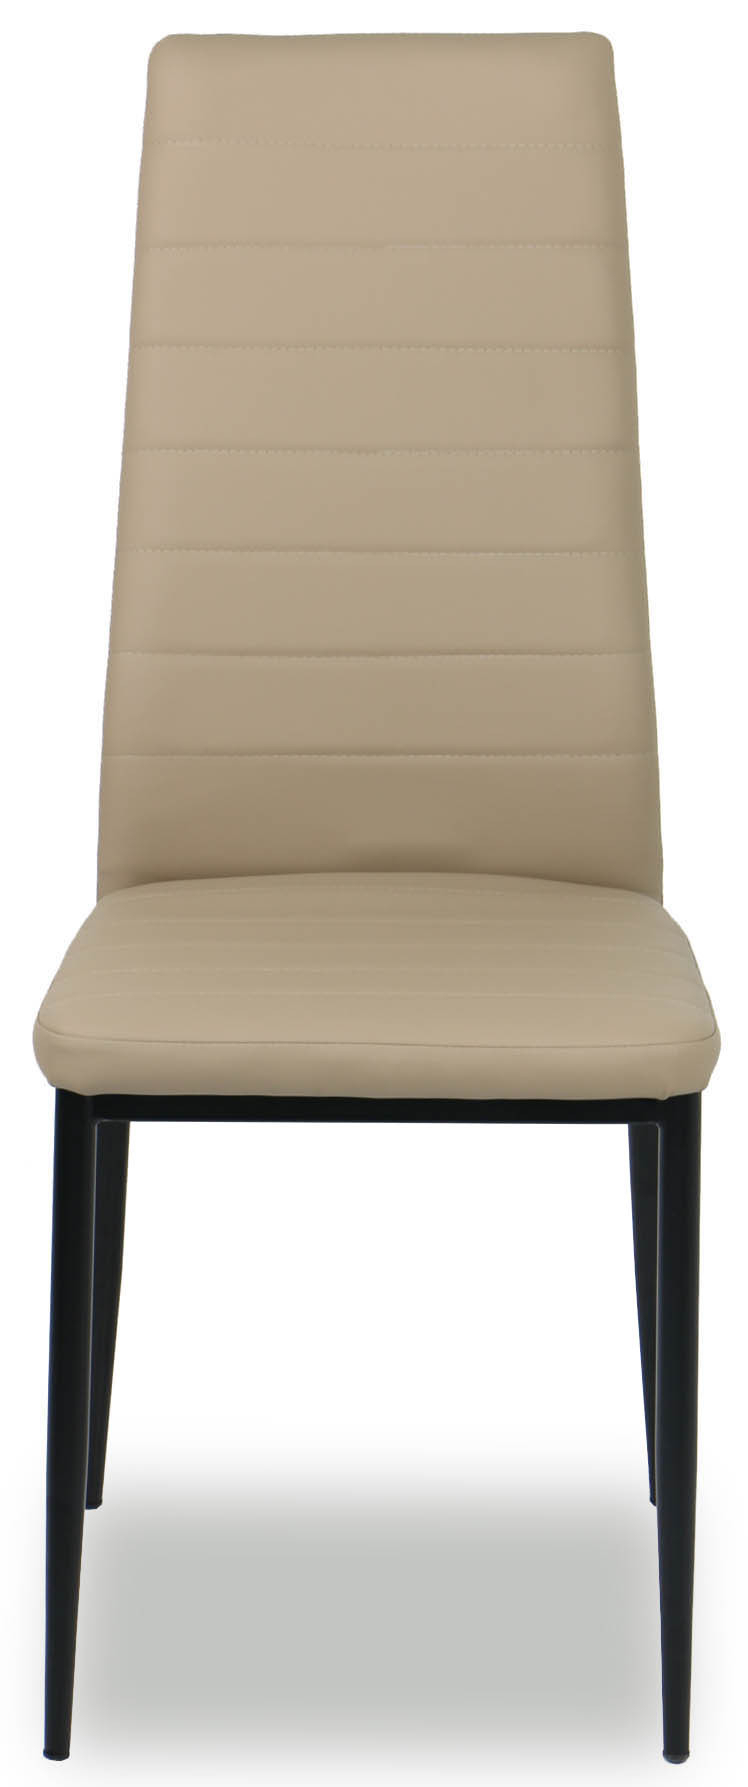 Quinn Dining Chair Champagne | Furniture & Home Décor | Fortytwo within Quinn Teak Sofa Chairs